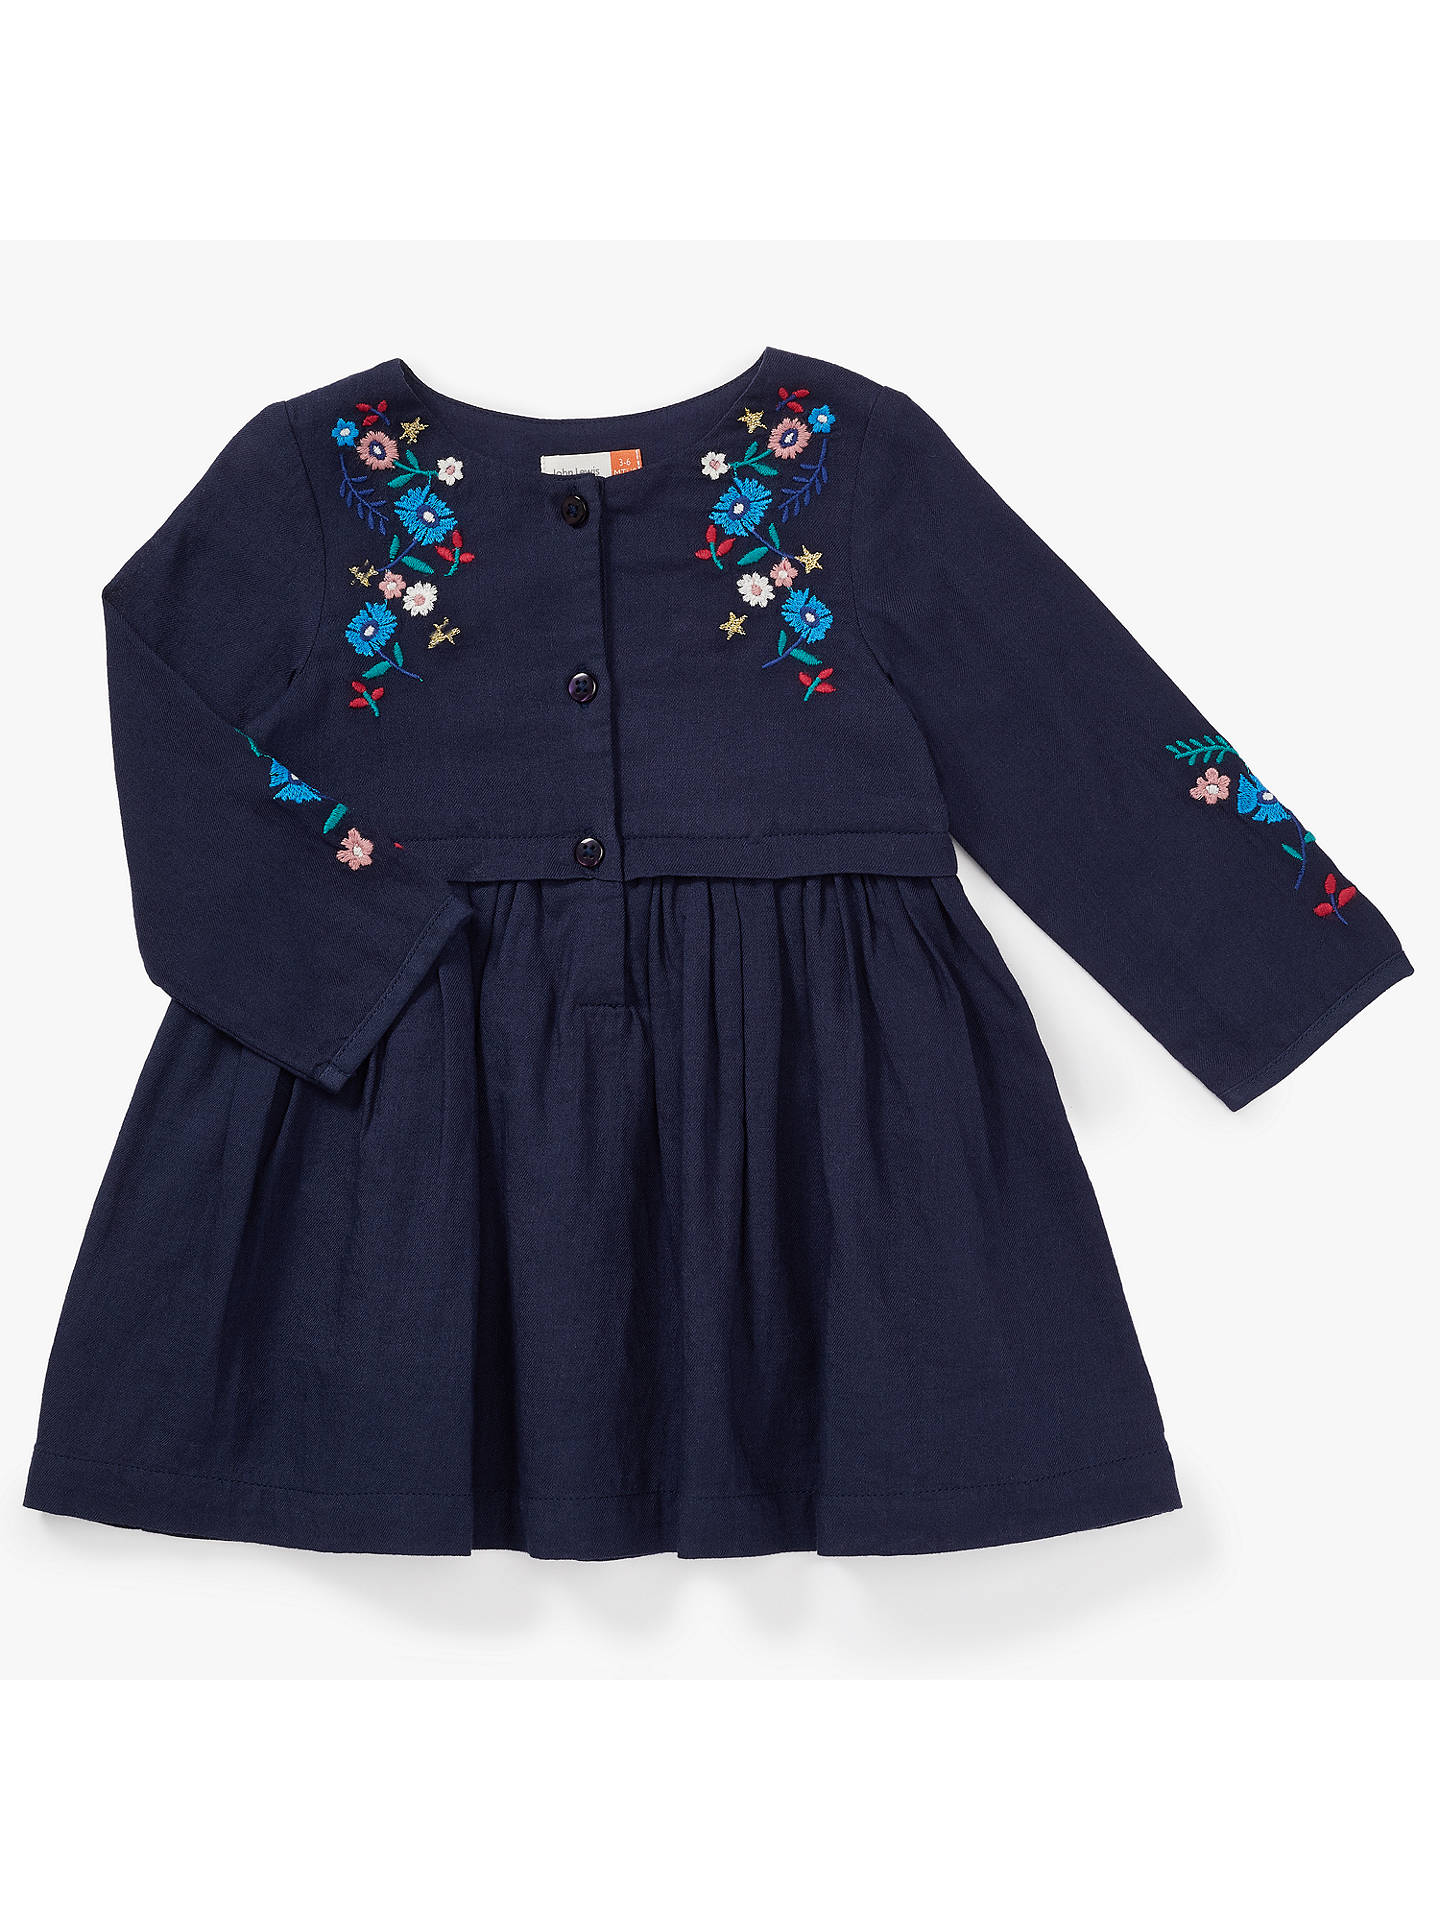 John Lewis Baby Embroidered Woven Dress, Navy at John Lewis & Partners